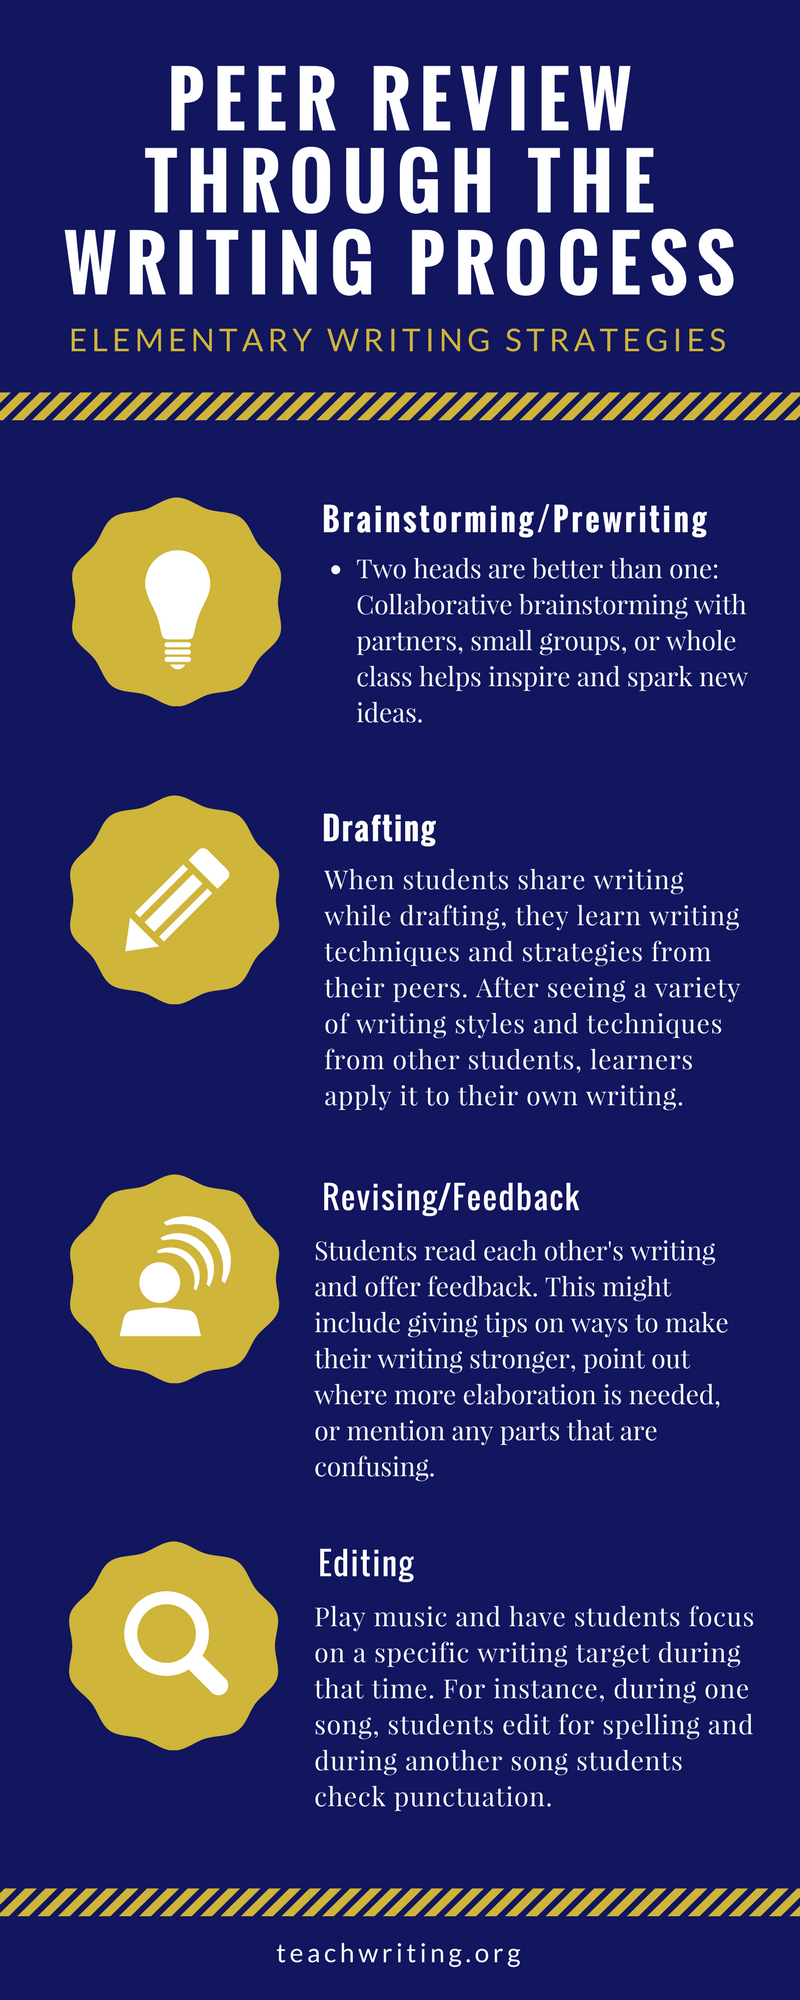 Peer Review through the writing process